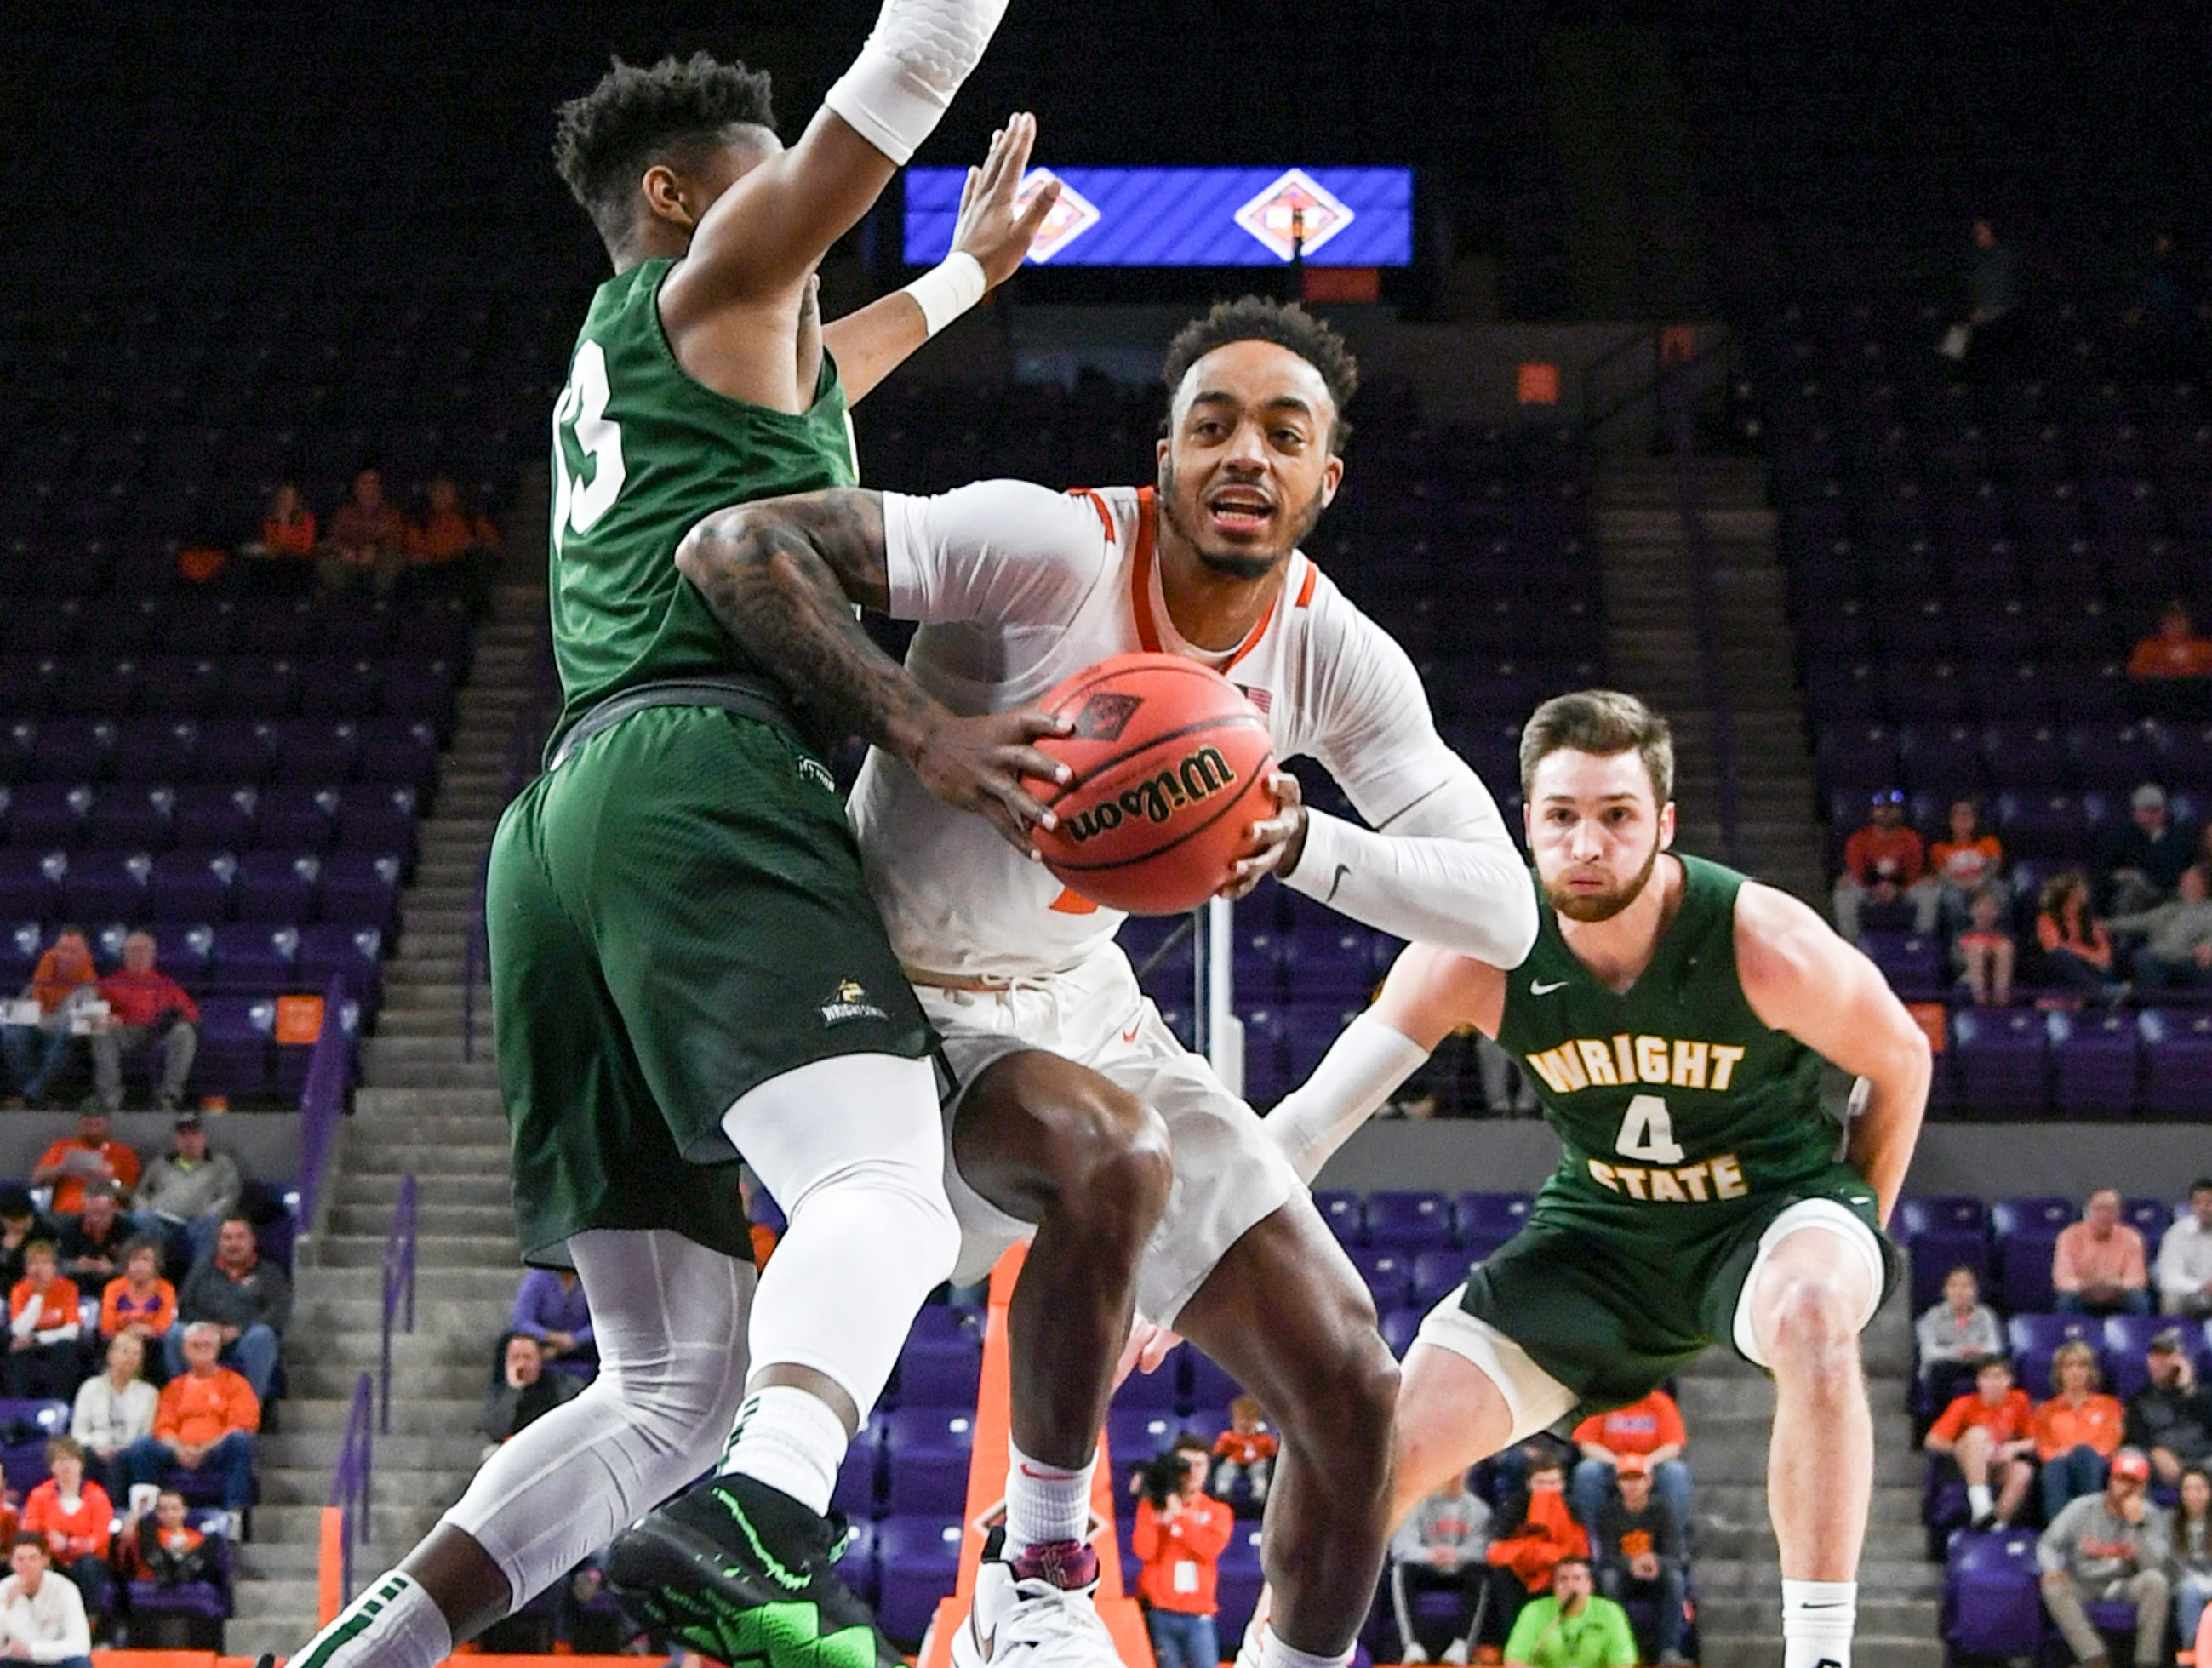 Clemson guard Marcquise Reed (2) dribbles near Wright State guard Alan Vest(4) during the first half of the NIT at Littlejohn Coliseum in Clemson Tuesday, March 19, 2019.